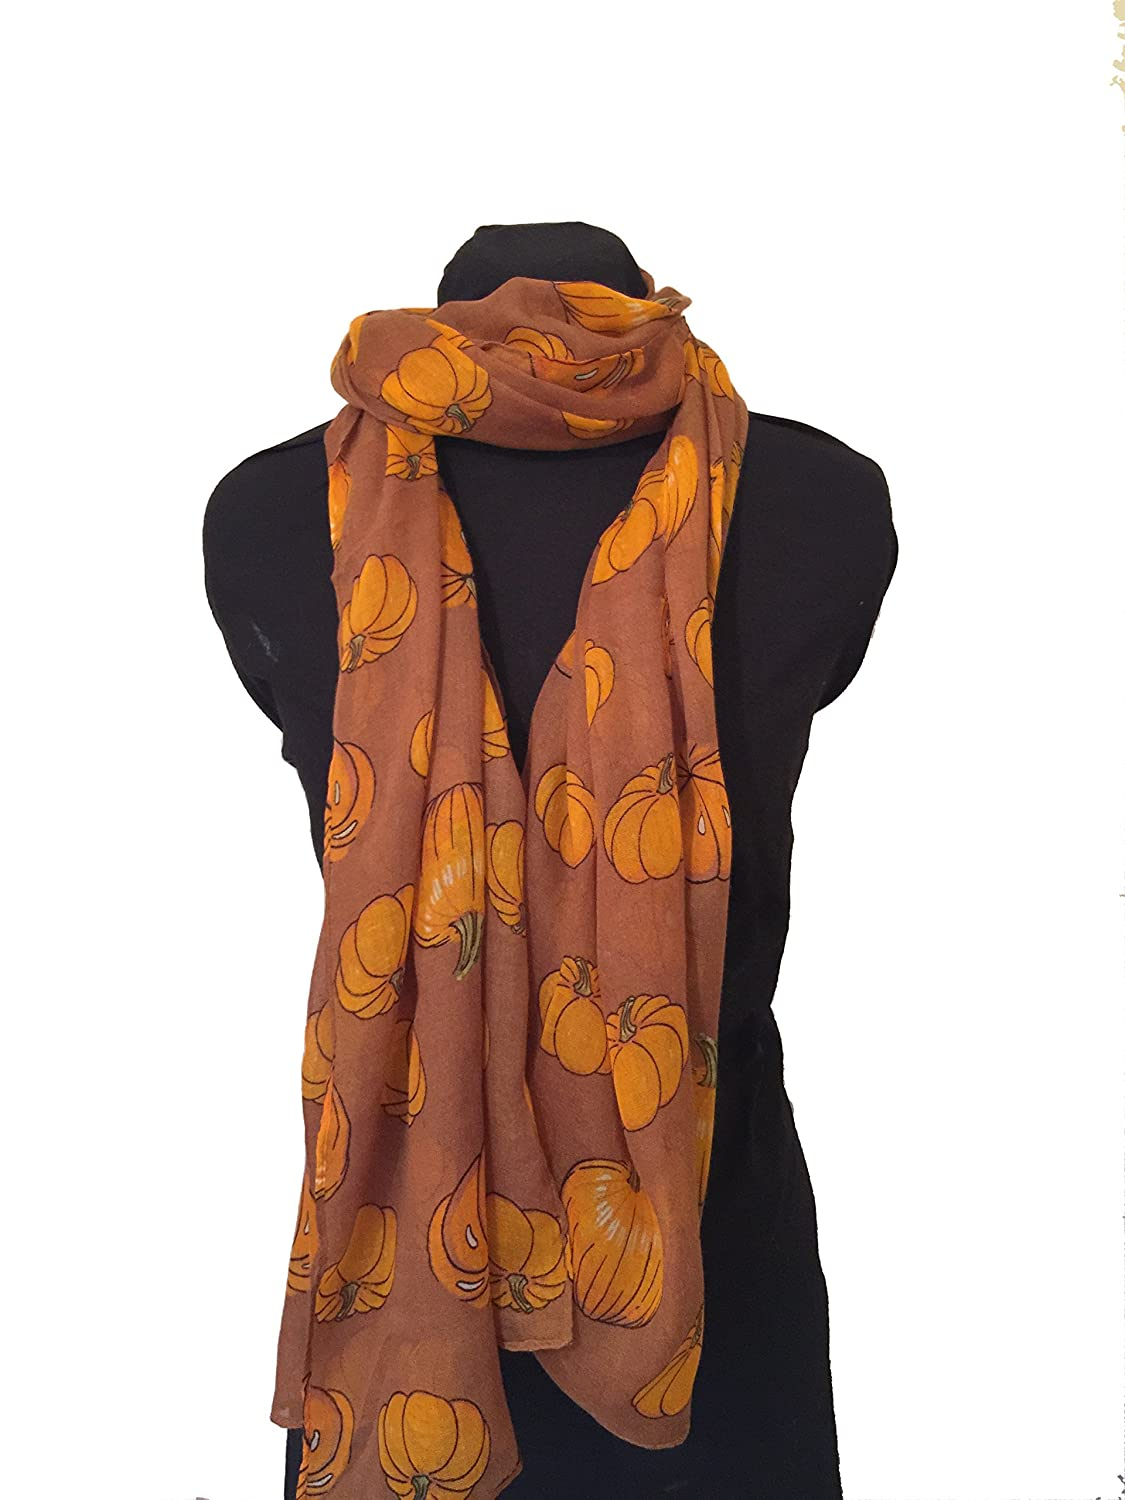 Bufanda marrón con calabaza halloween diseño -- Brown pumpkin halloween design scarf.